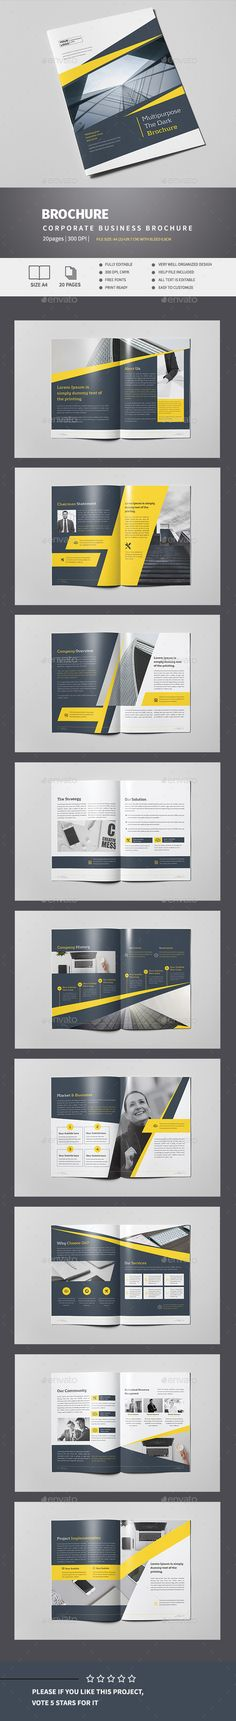 Clean Business Brochure Corporate Brochure Template by Pro-Gh. Layout Design, Broucher Design, Graphic Design Layouts, Corporate Brochure, Business Brochure, Corporate Design, Brochure Inspiration, Catalog Design, Cool Business Cards